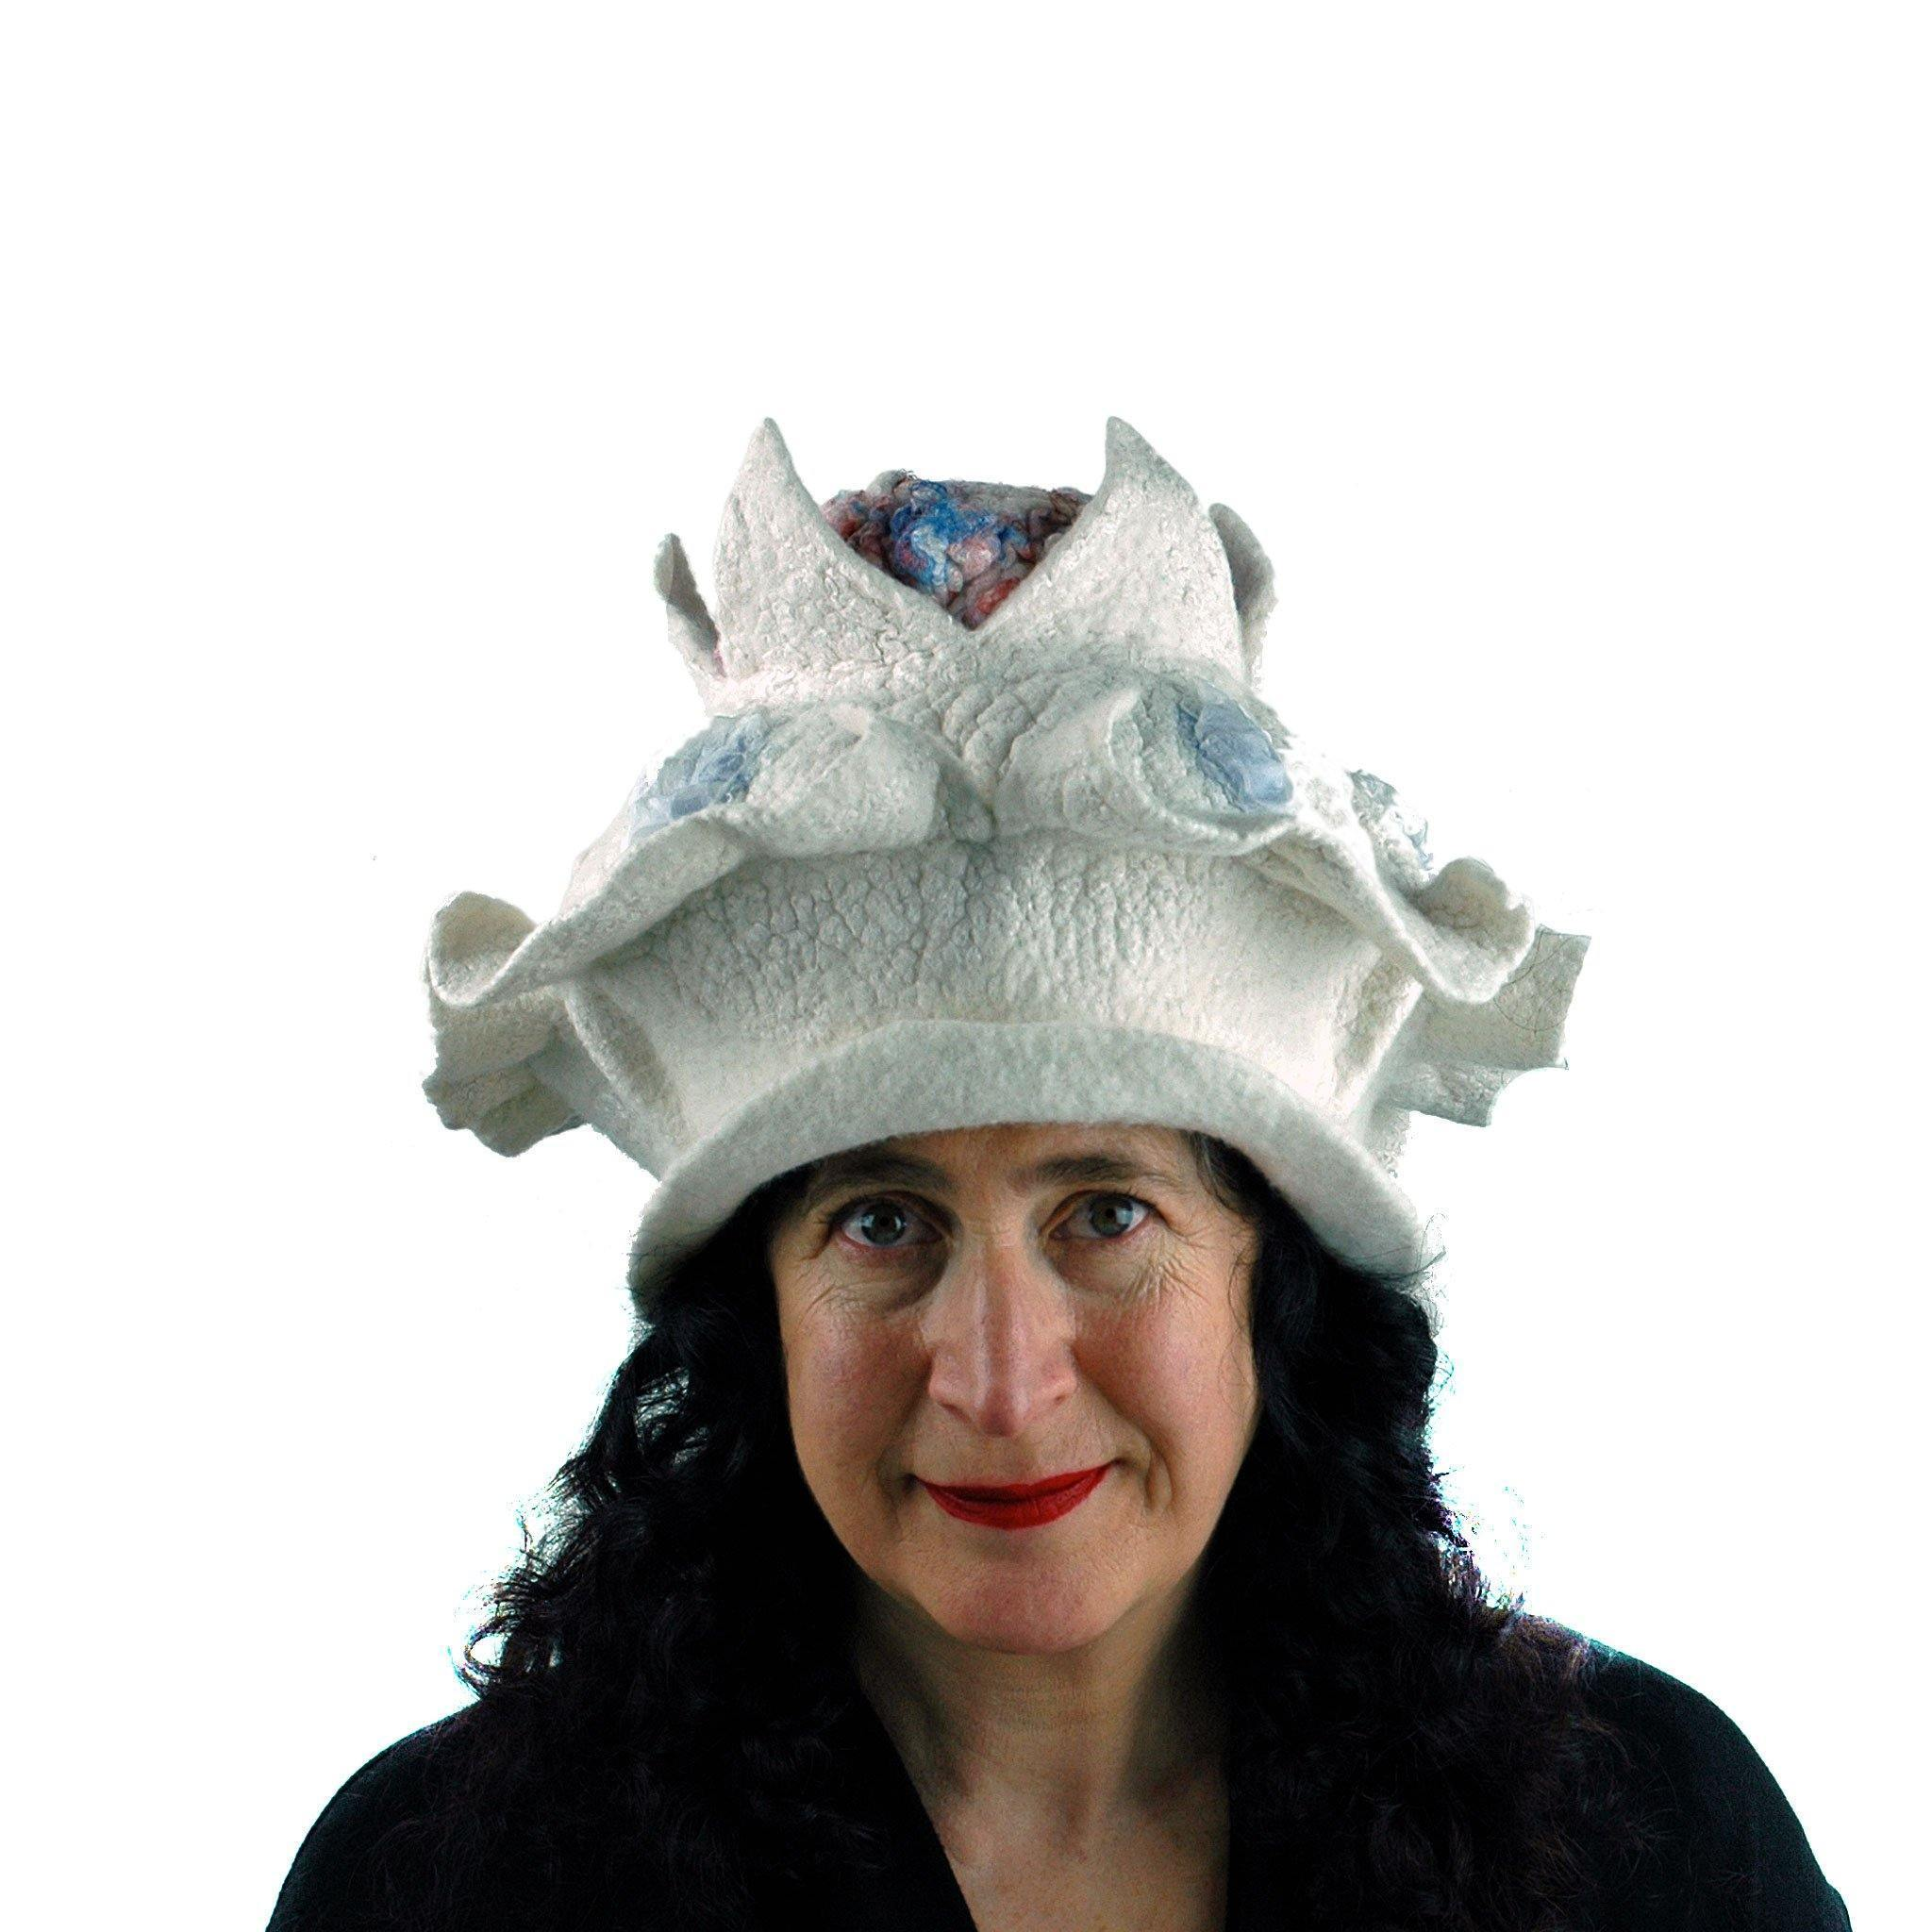 Surreal Brain Hat in White, Red and Blue - front view